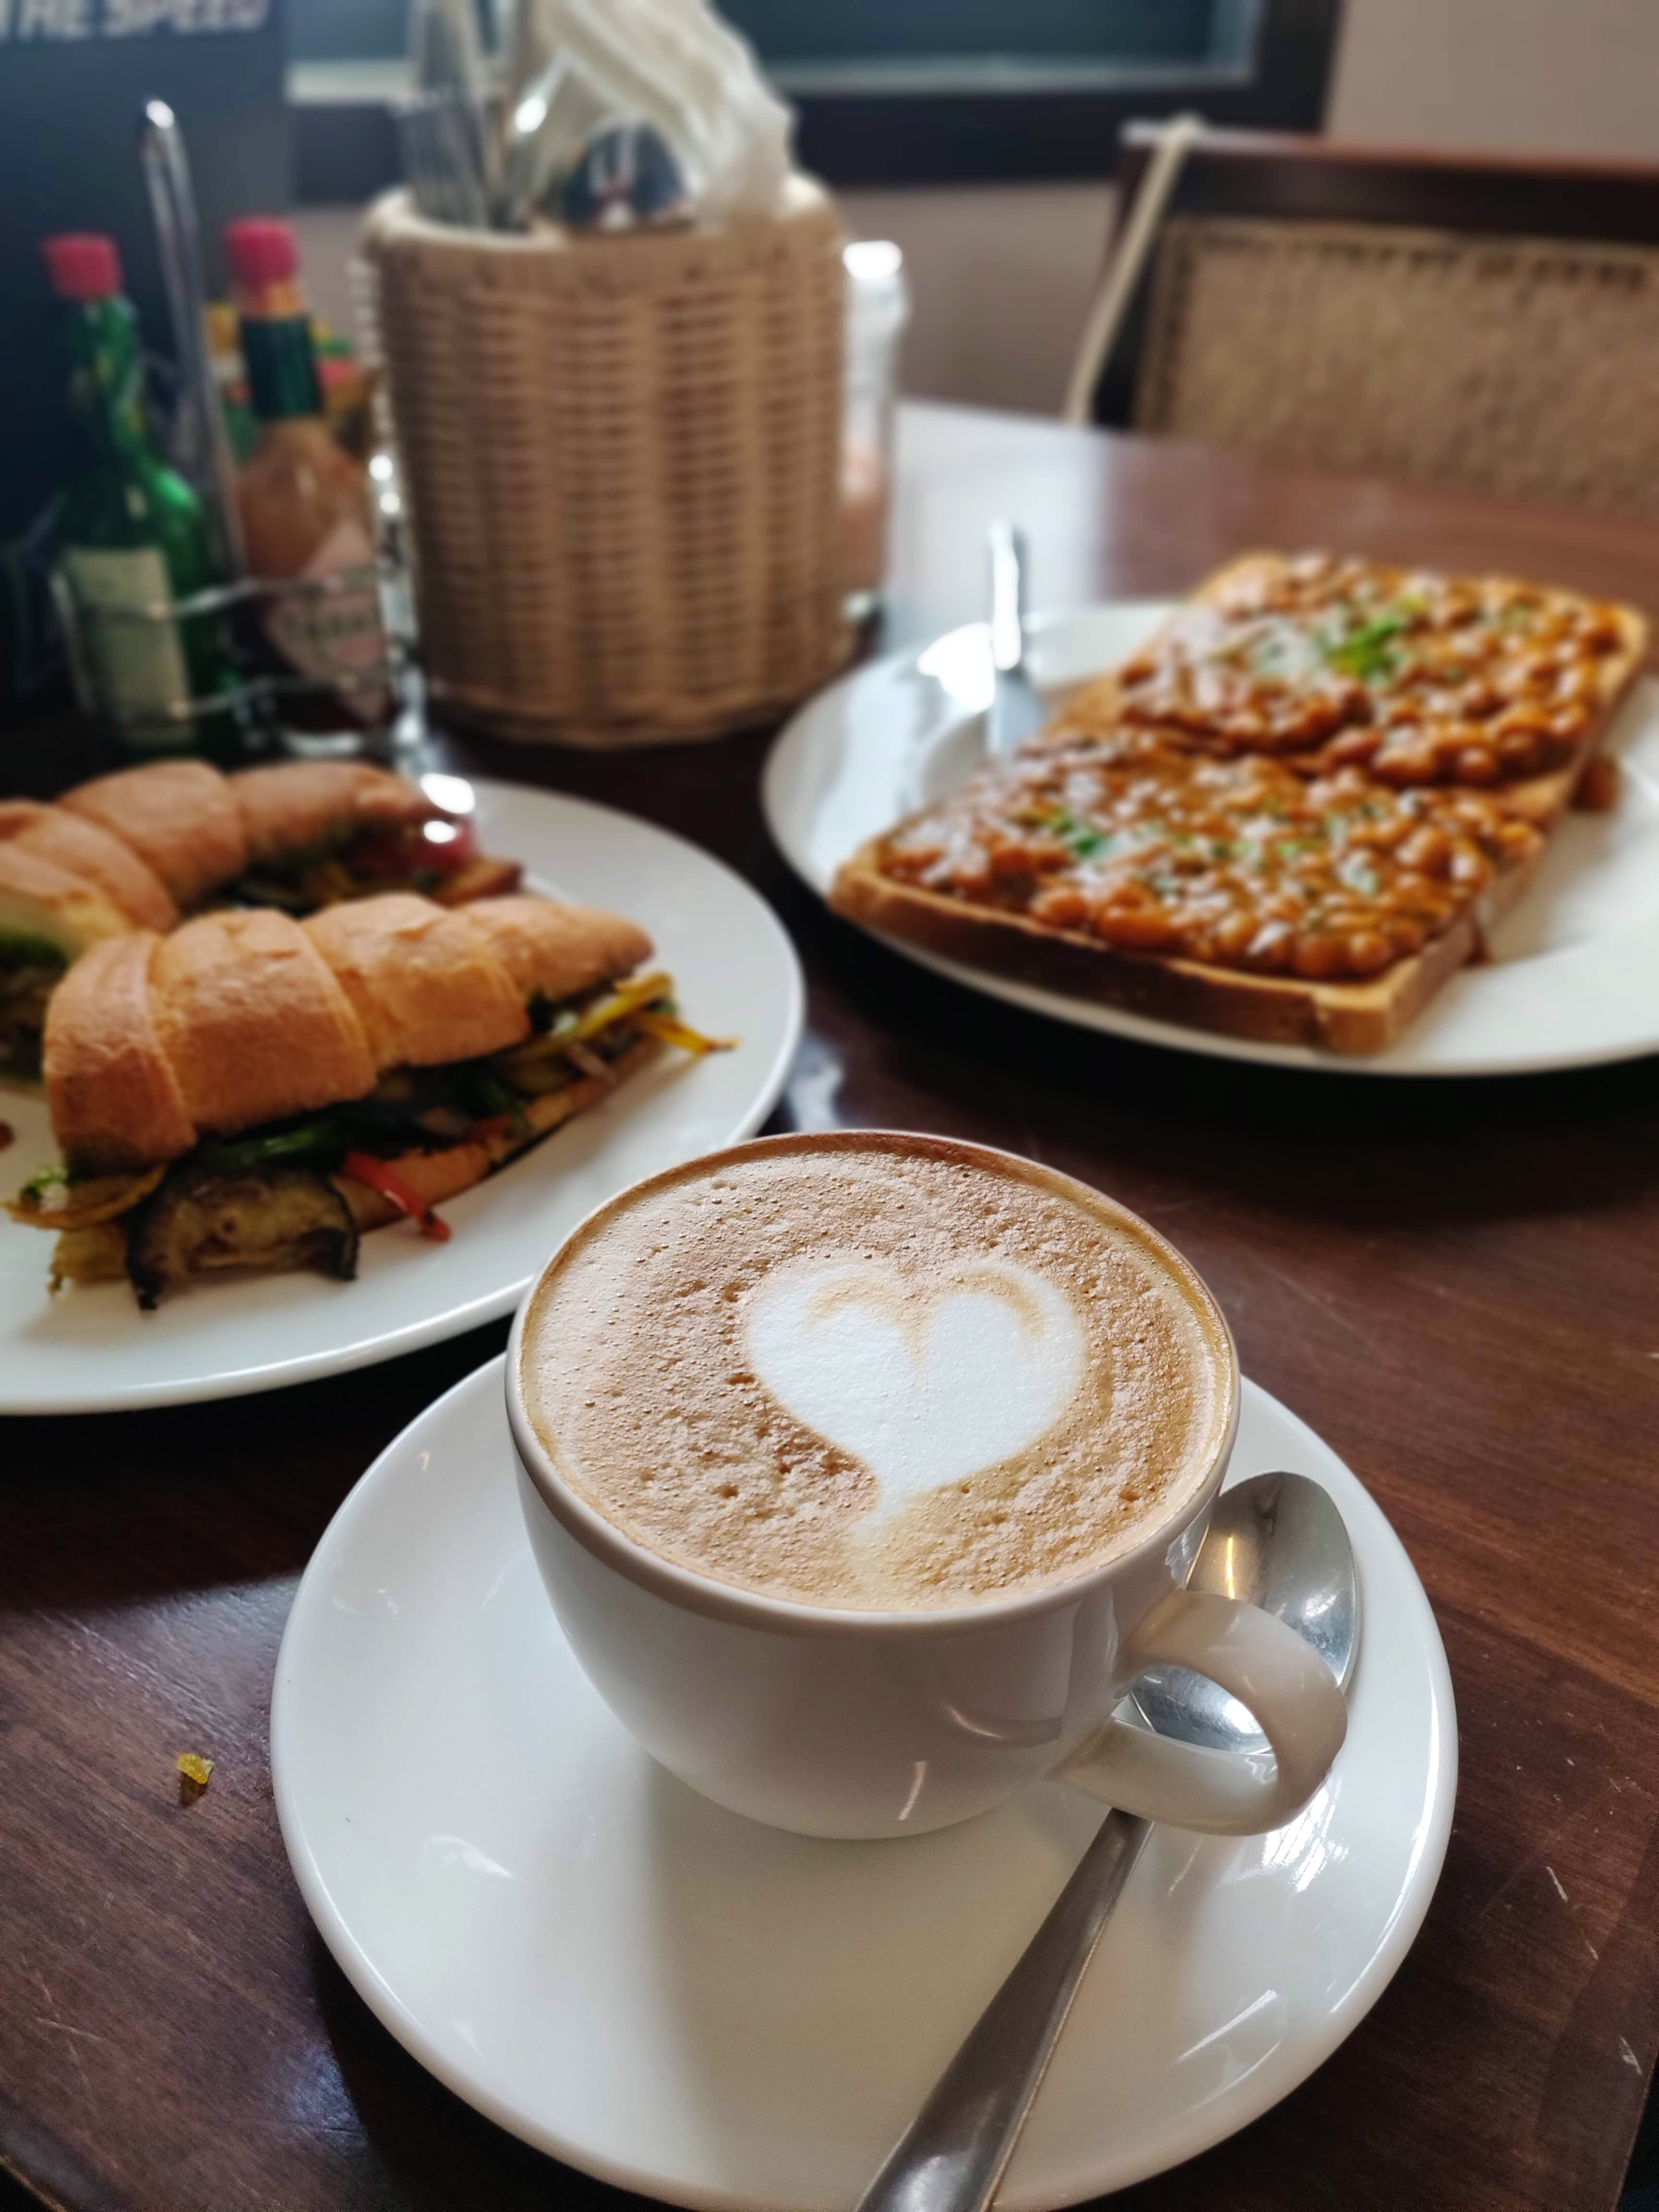 This Cafe Will Give You All The Feels With Their Inviting Decor And Food